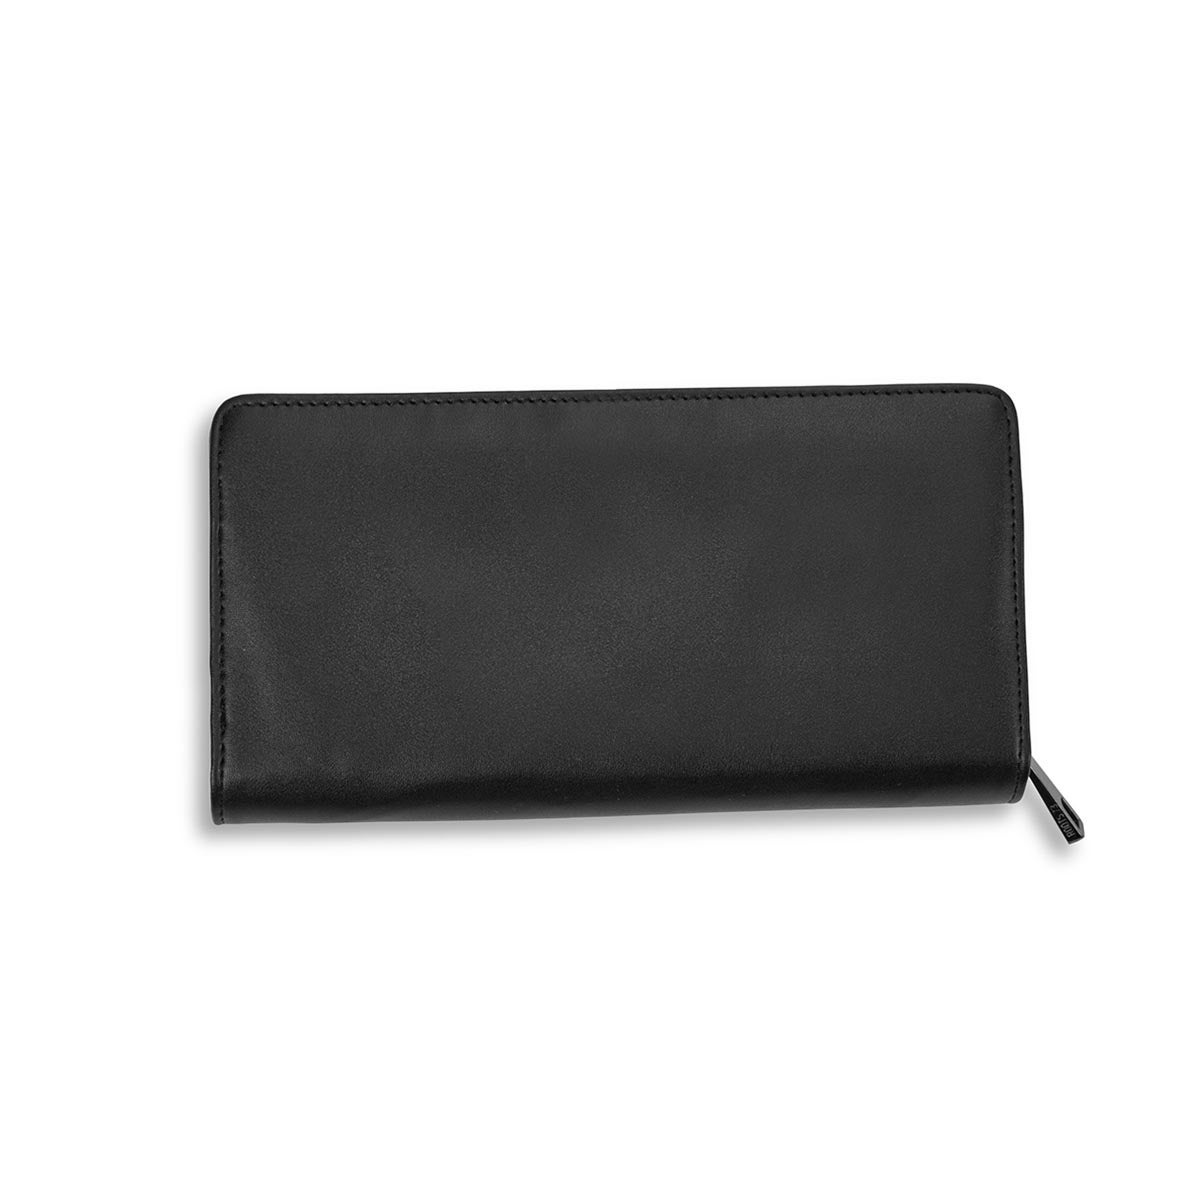 Lds Cavern Collection blk clutch wallet